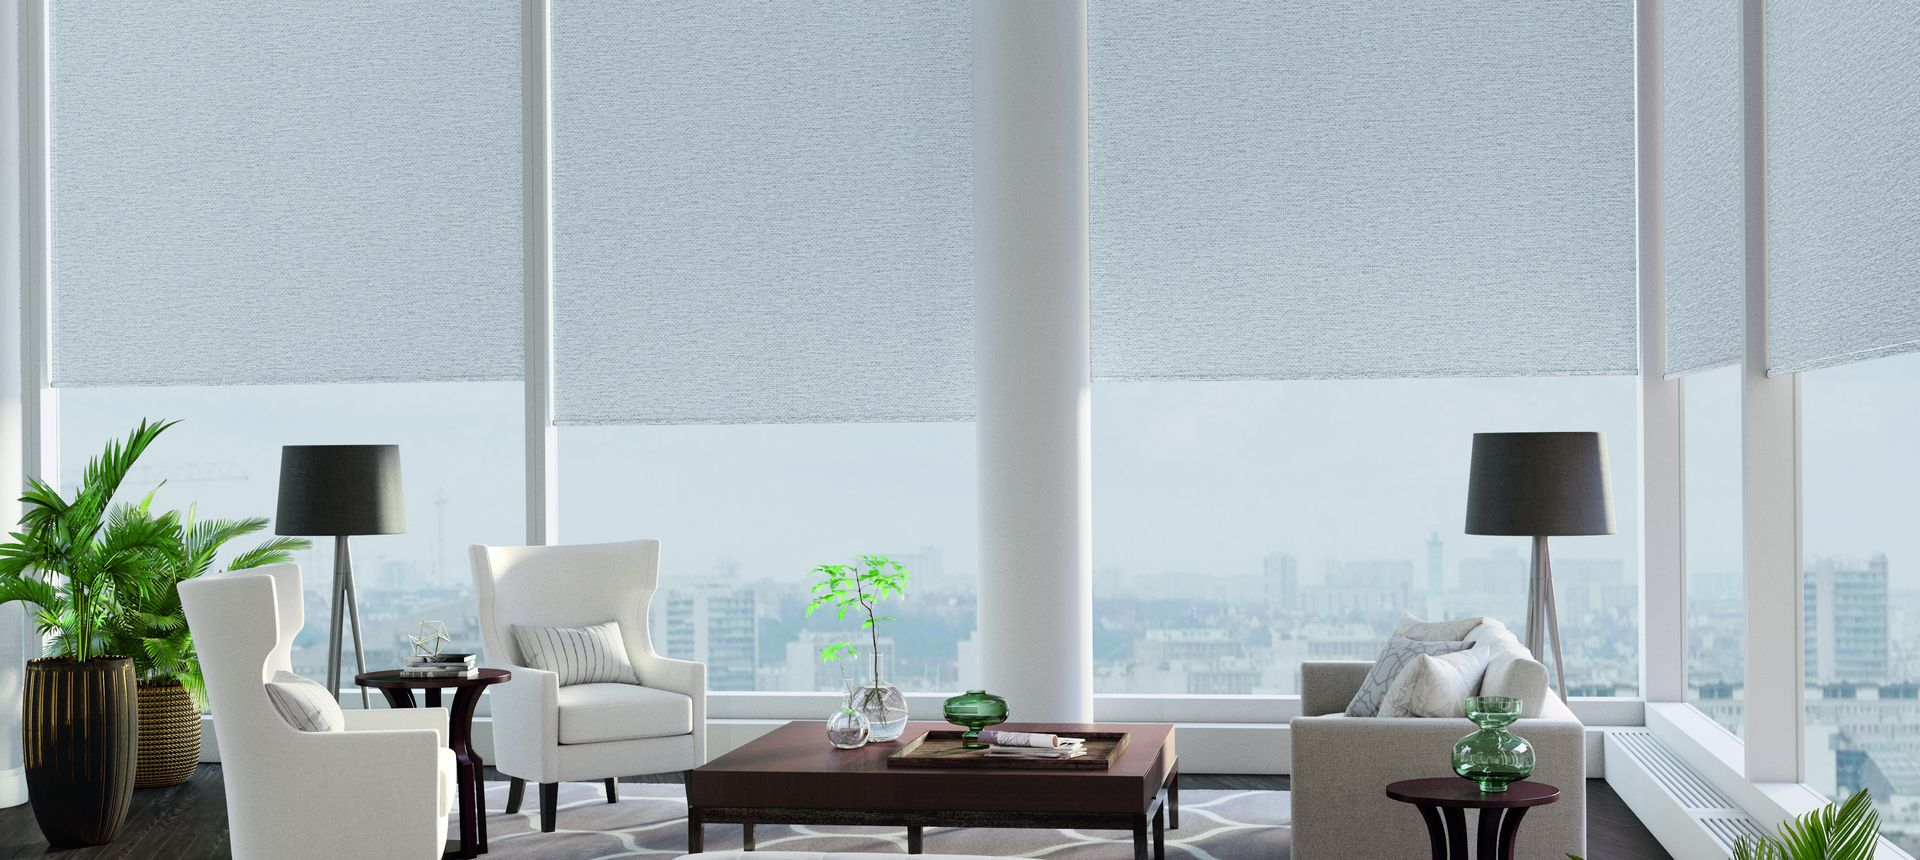 The perfect window coverings for your home or office